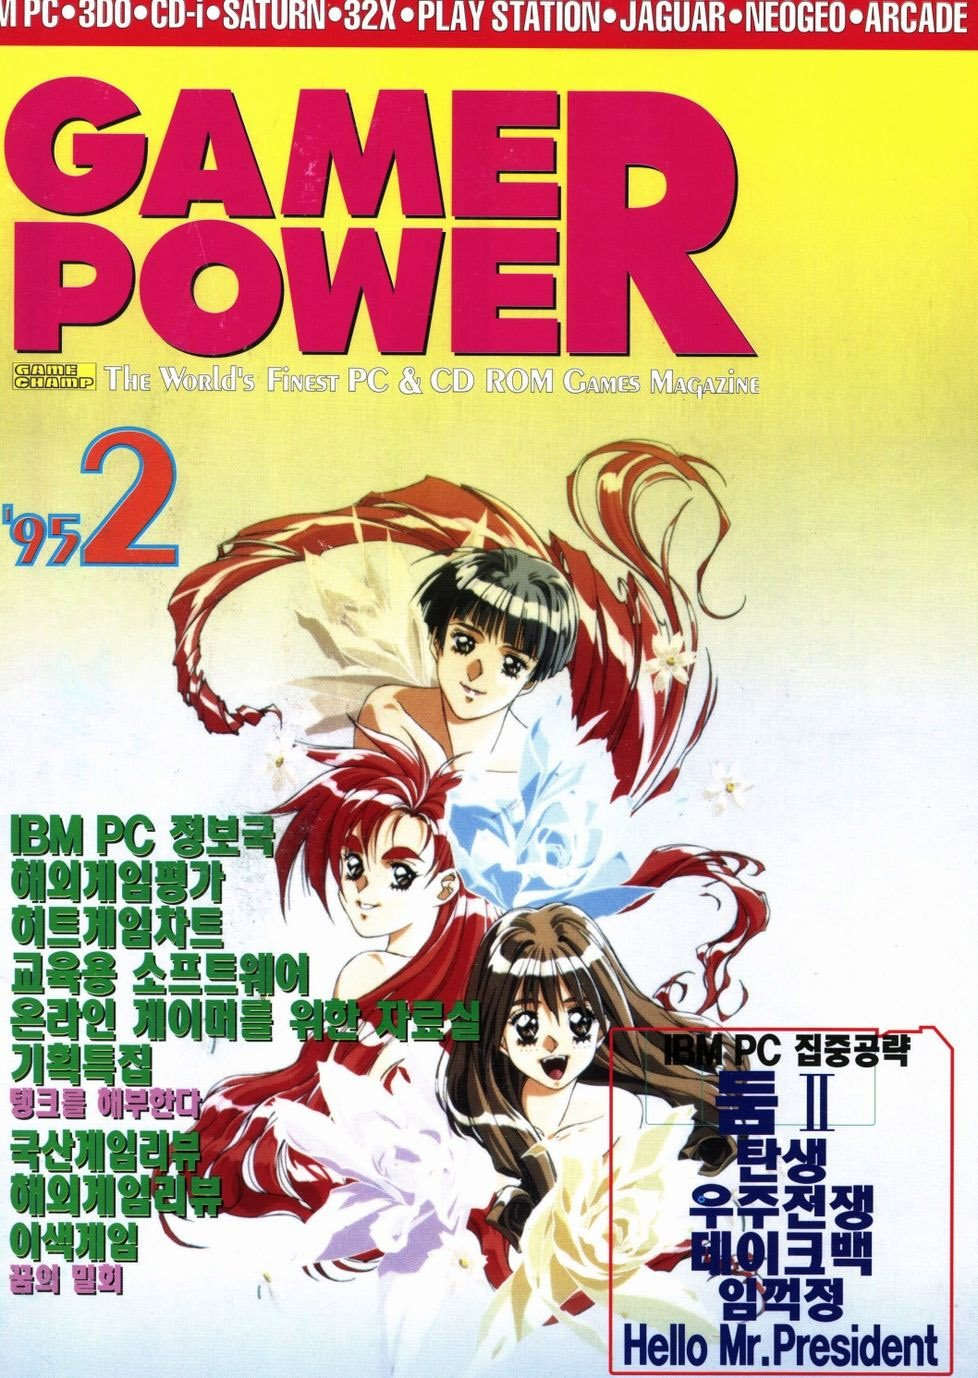 Game Power Issue 011 (February 1995)